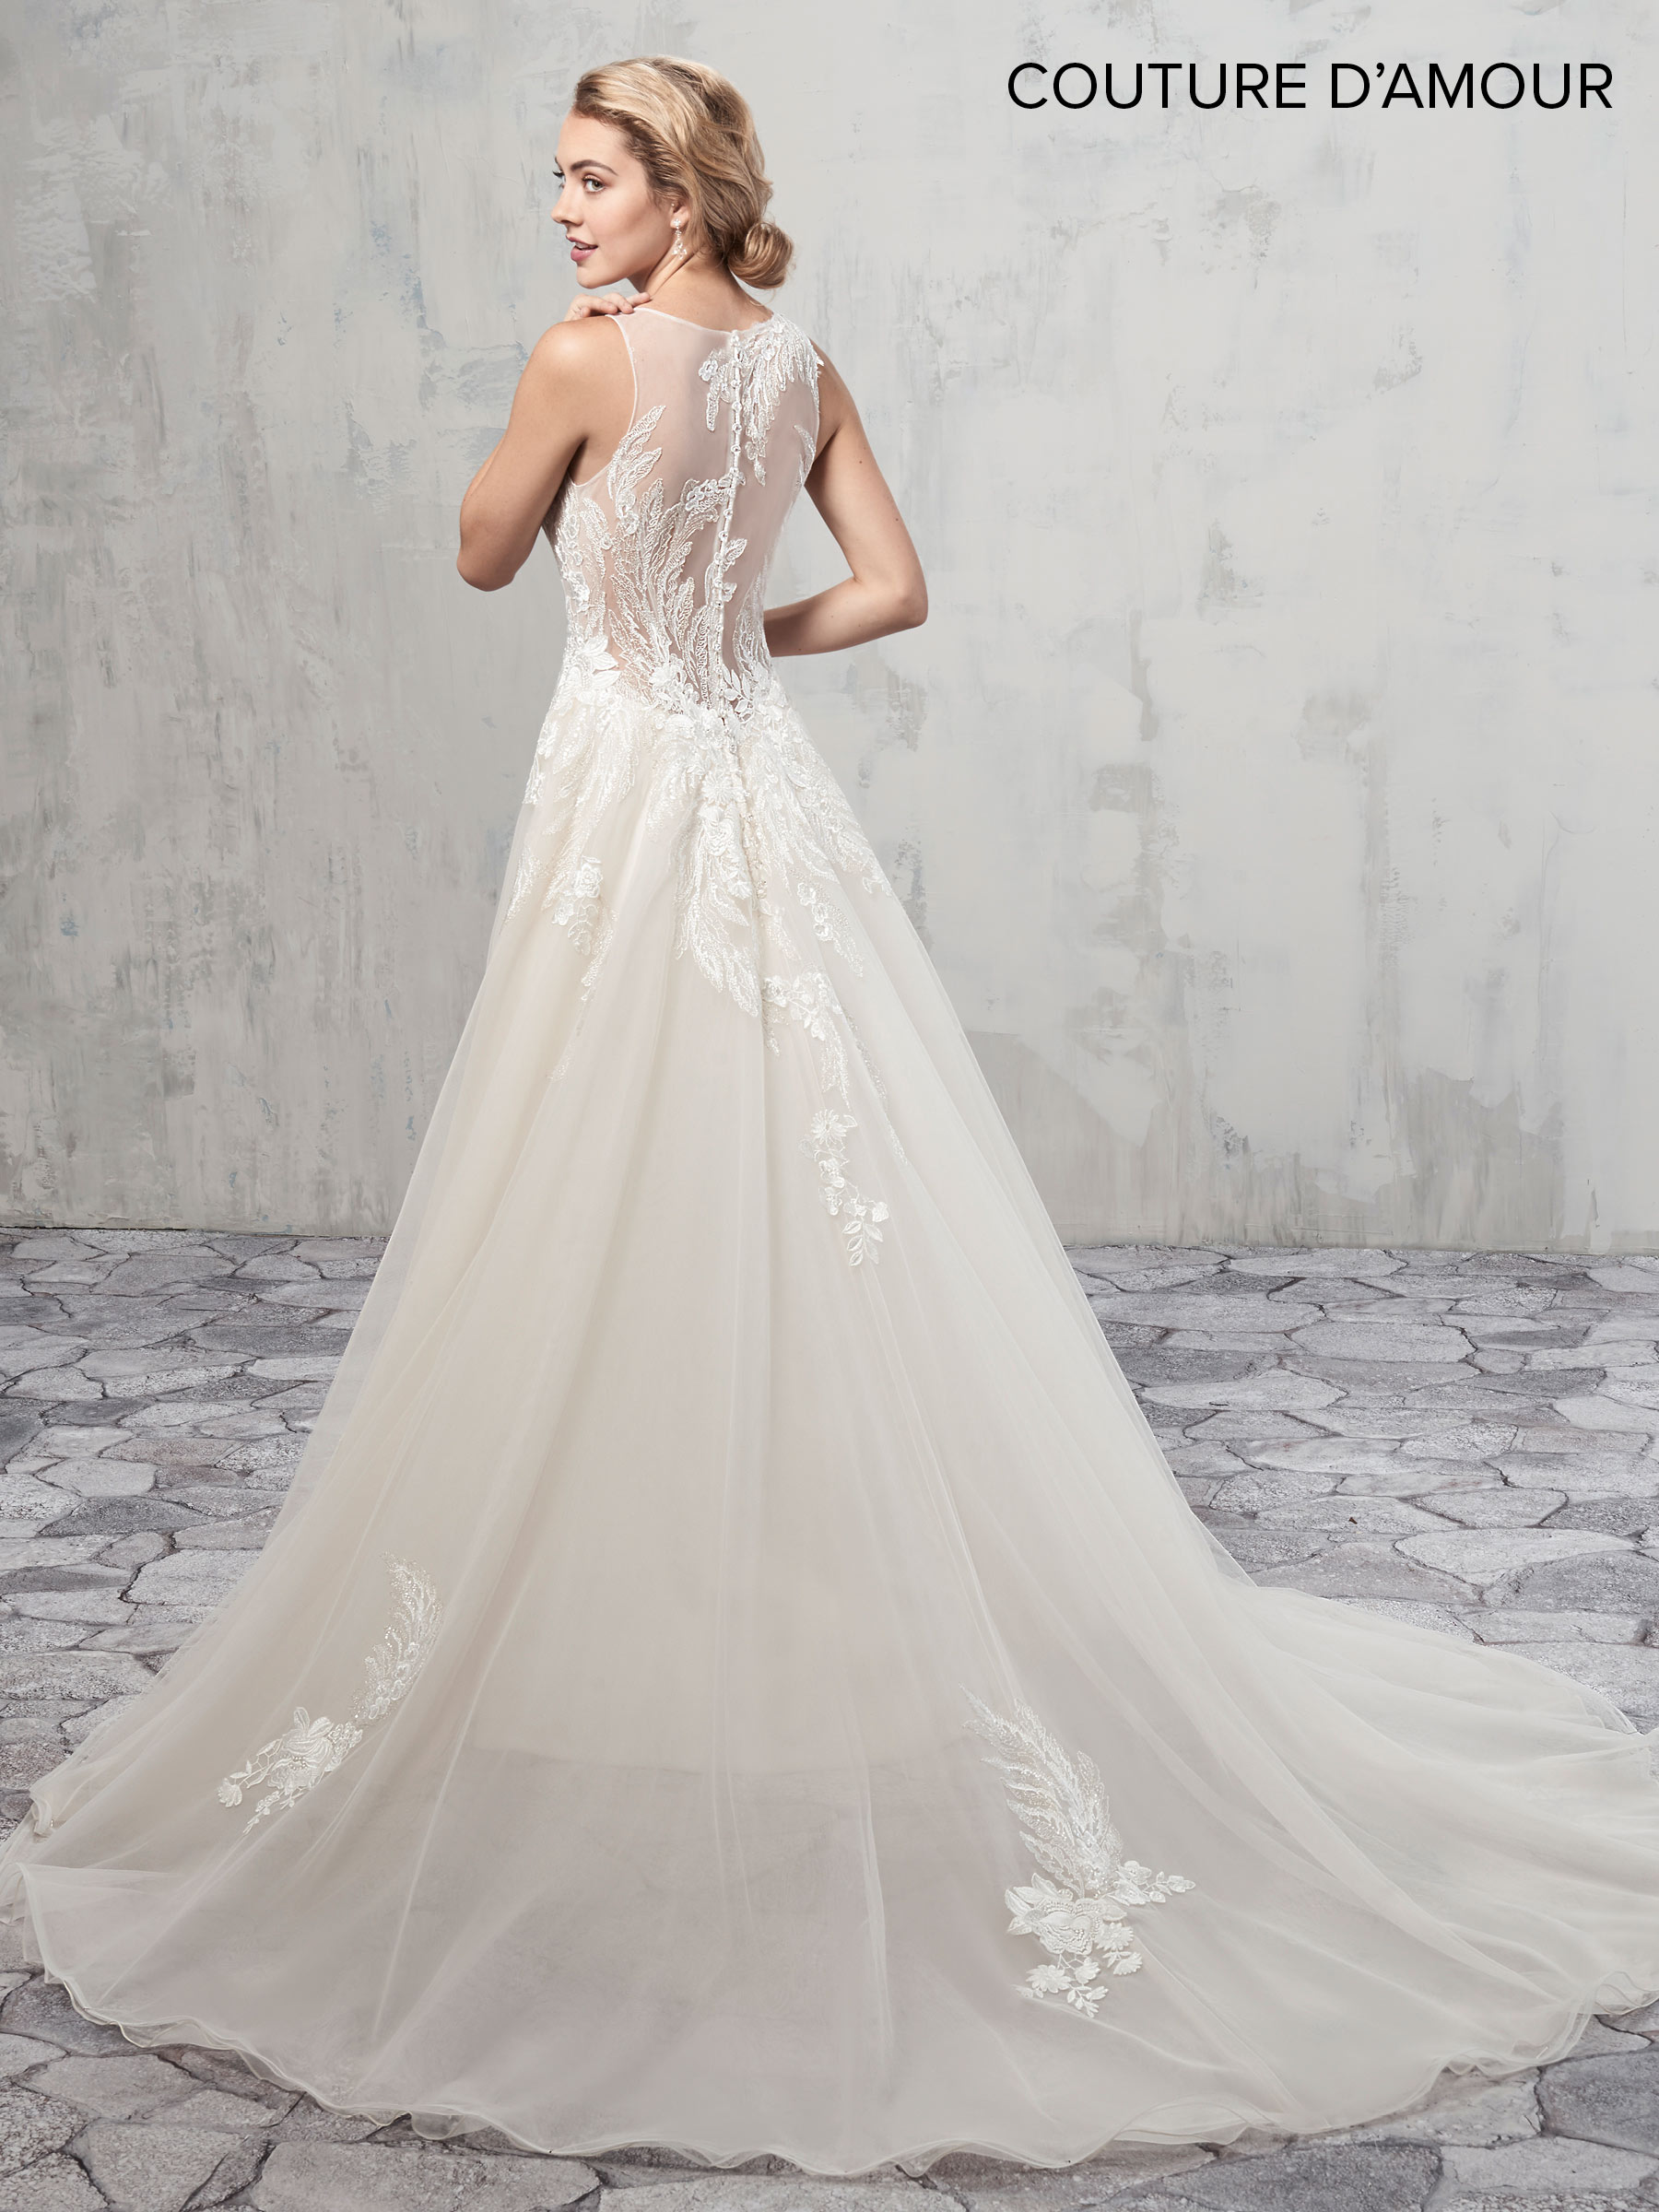 Couture Damour Bridal Dresses   Couture d'Amour   Style - MB4019